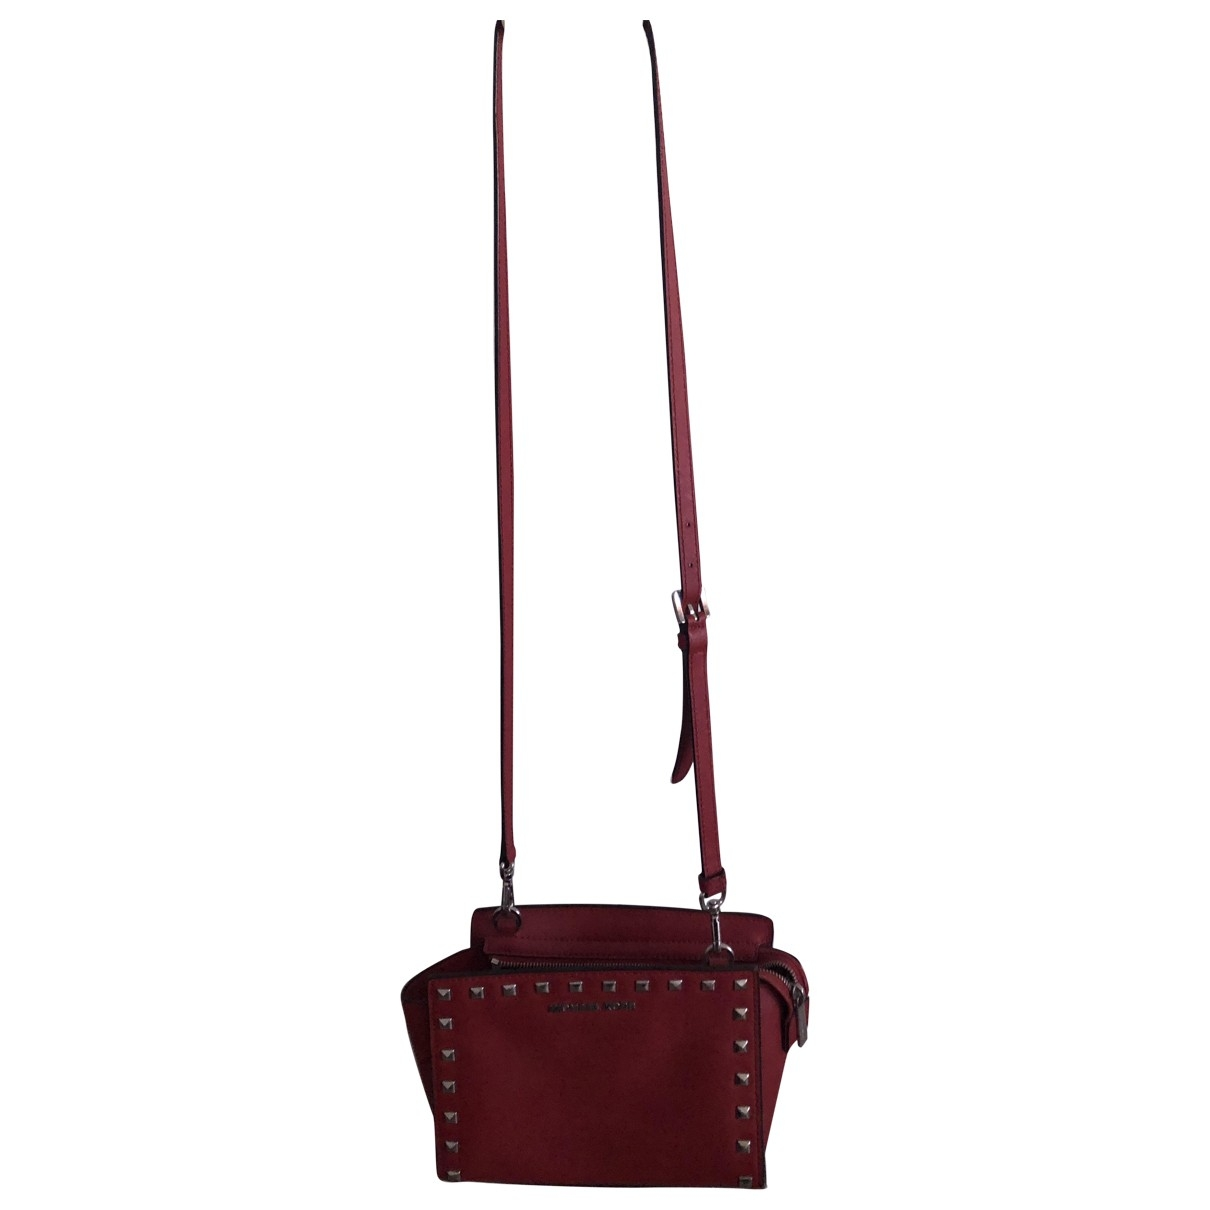 Michael Kors Selma Red Leather Clutch bag for Women \N